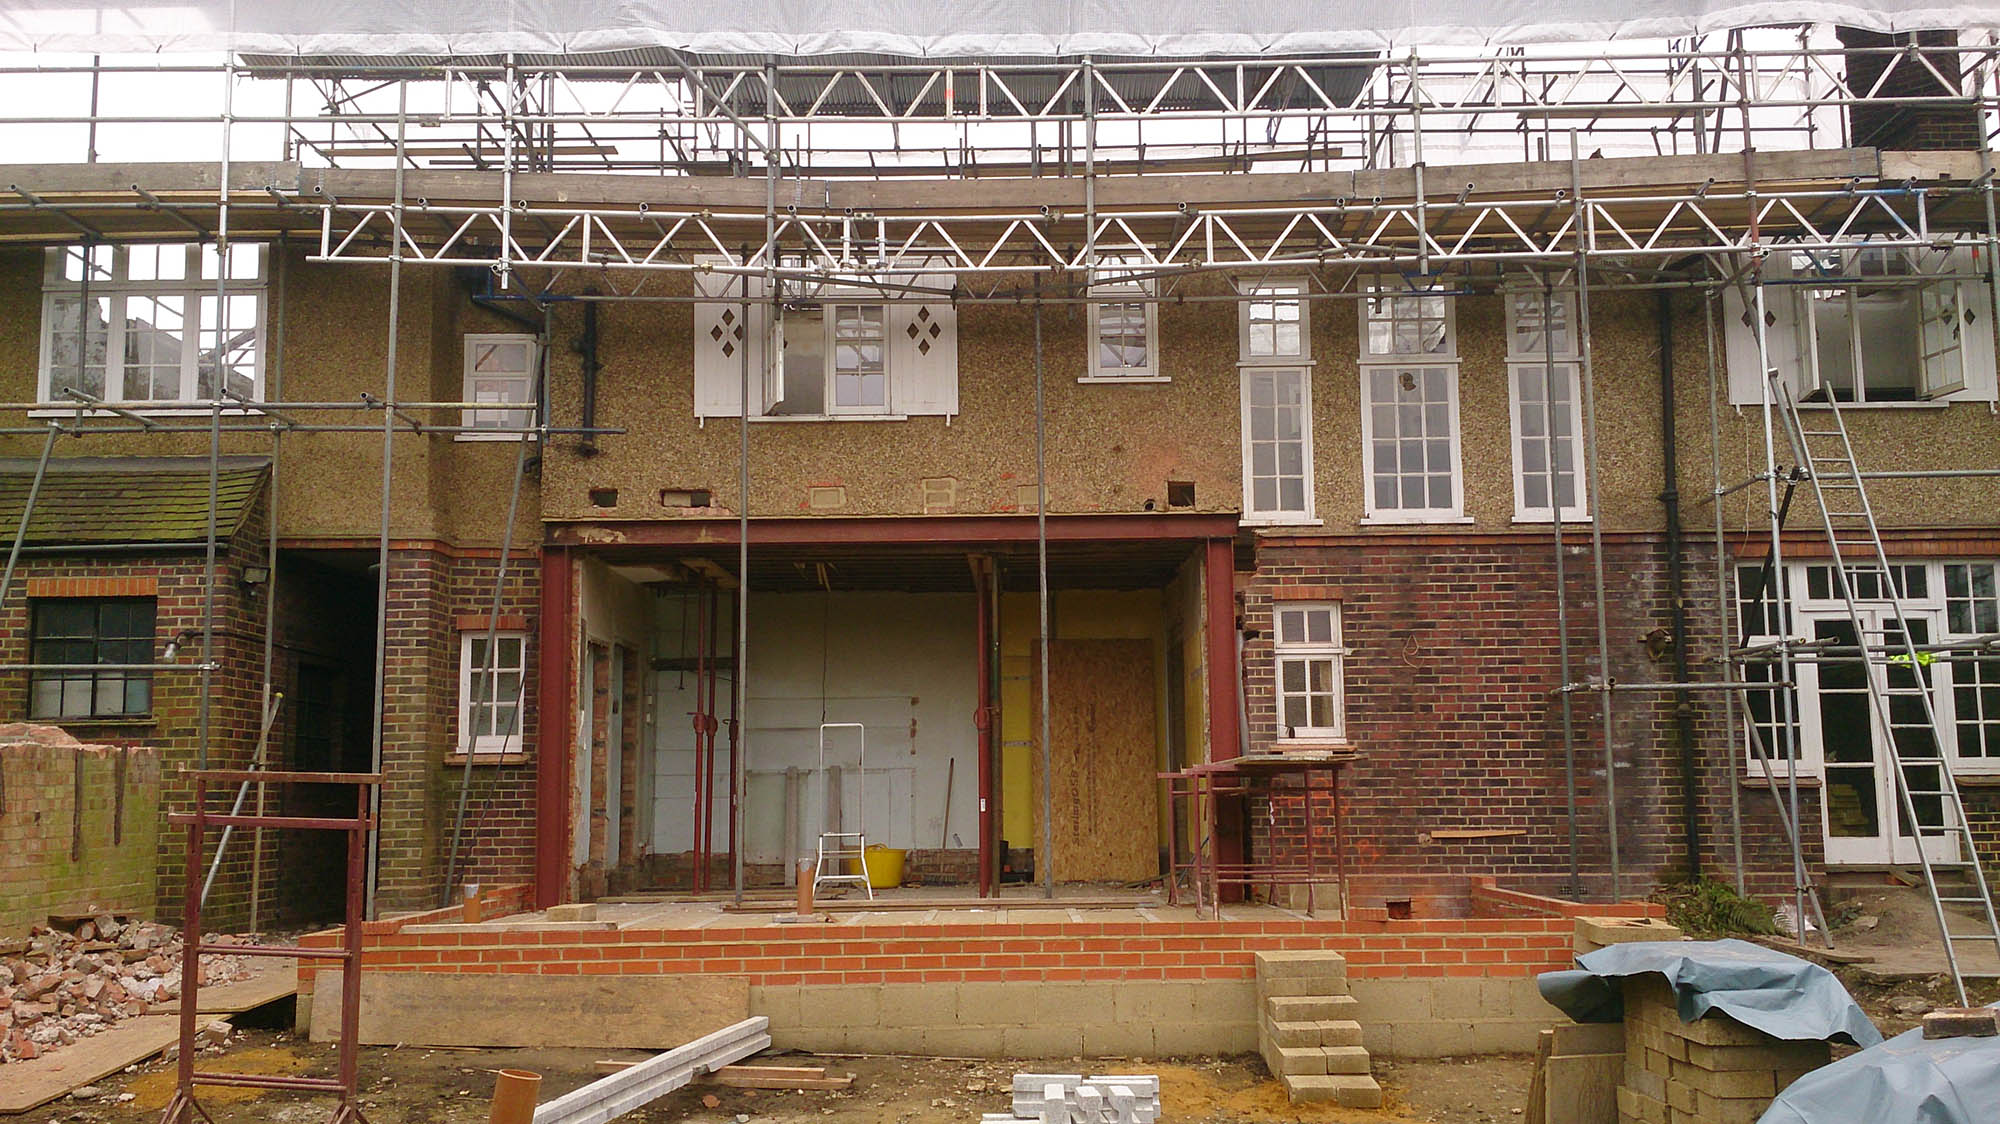 Putney Restoration project exterior work in progress photo of the rear of the house with scaffolding and extension walls.